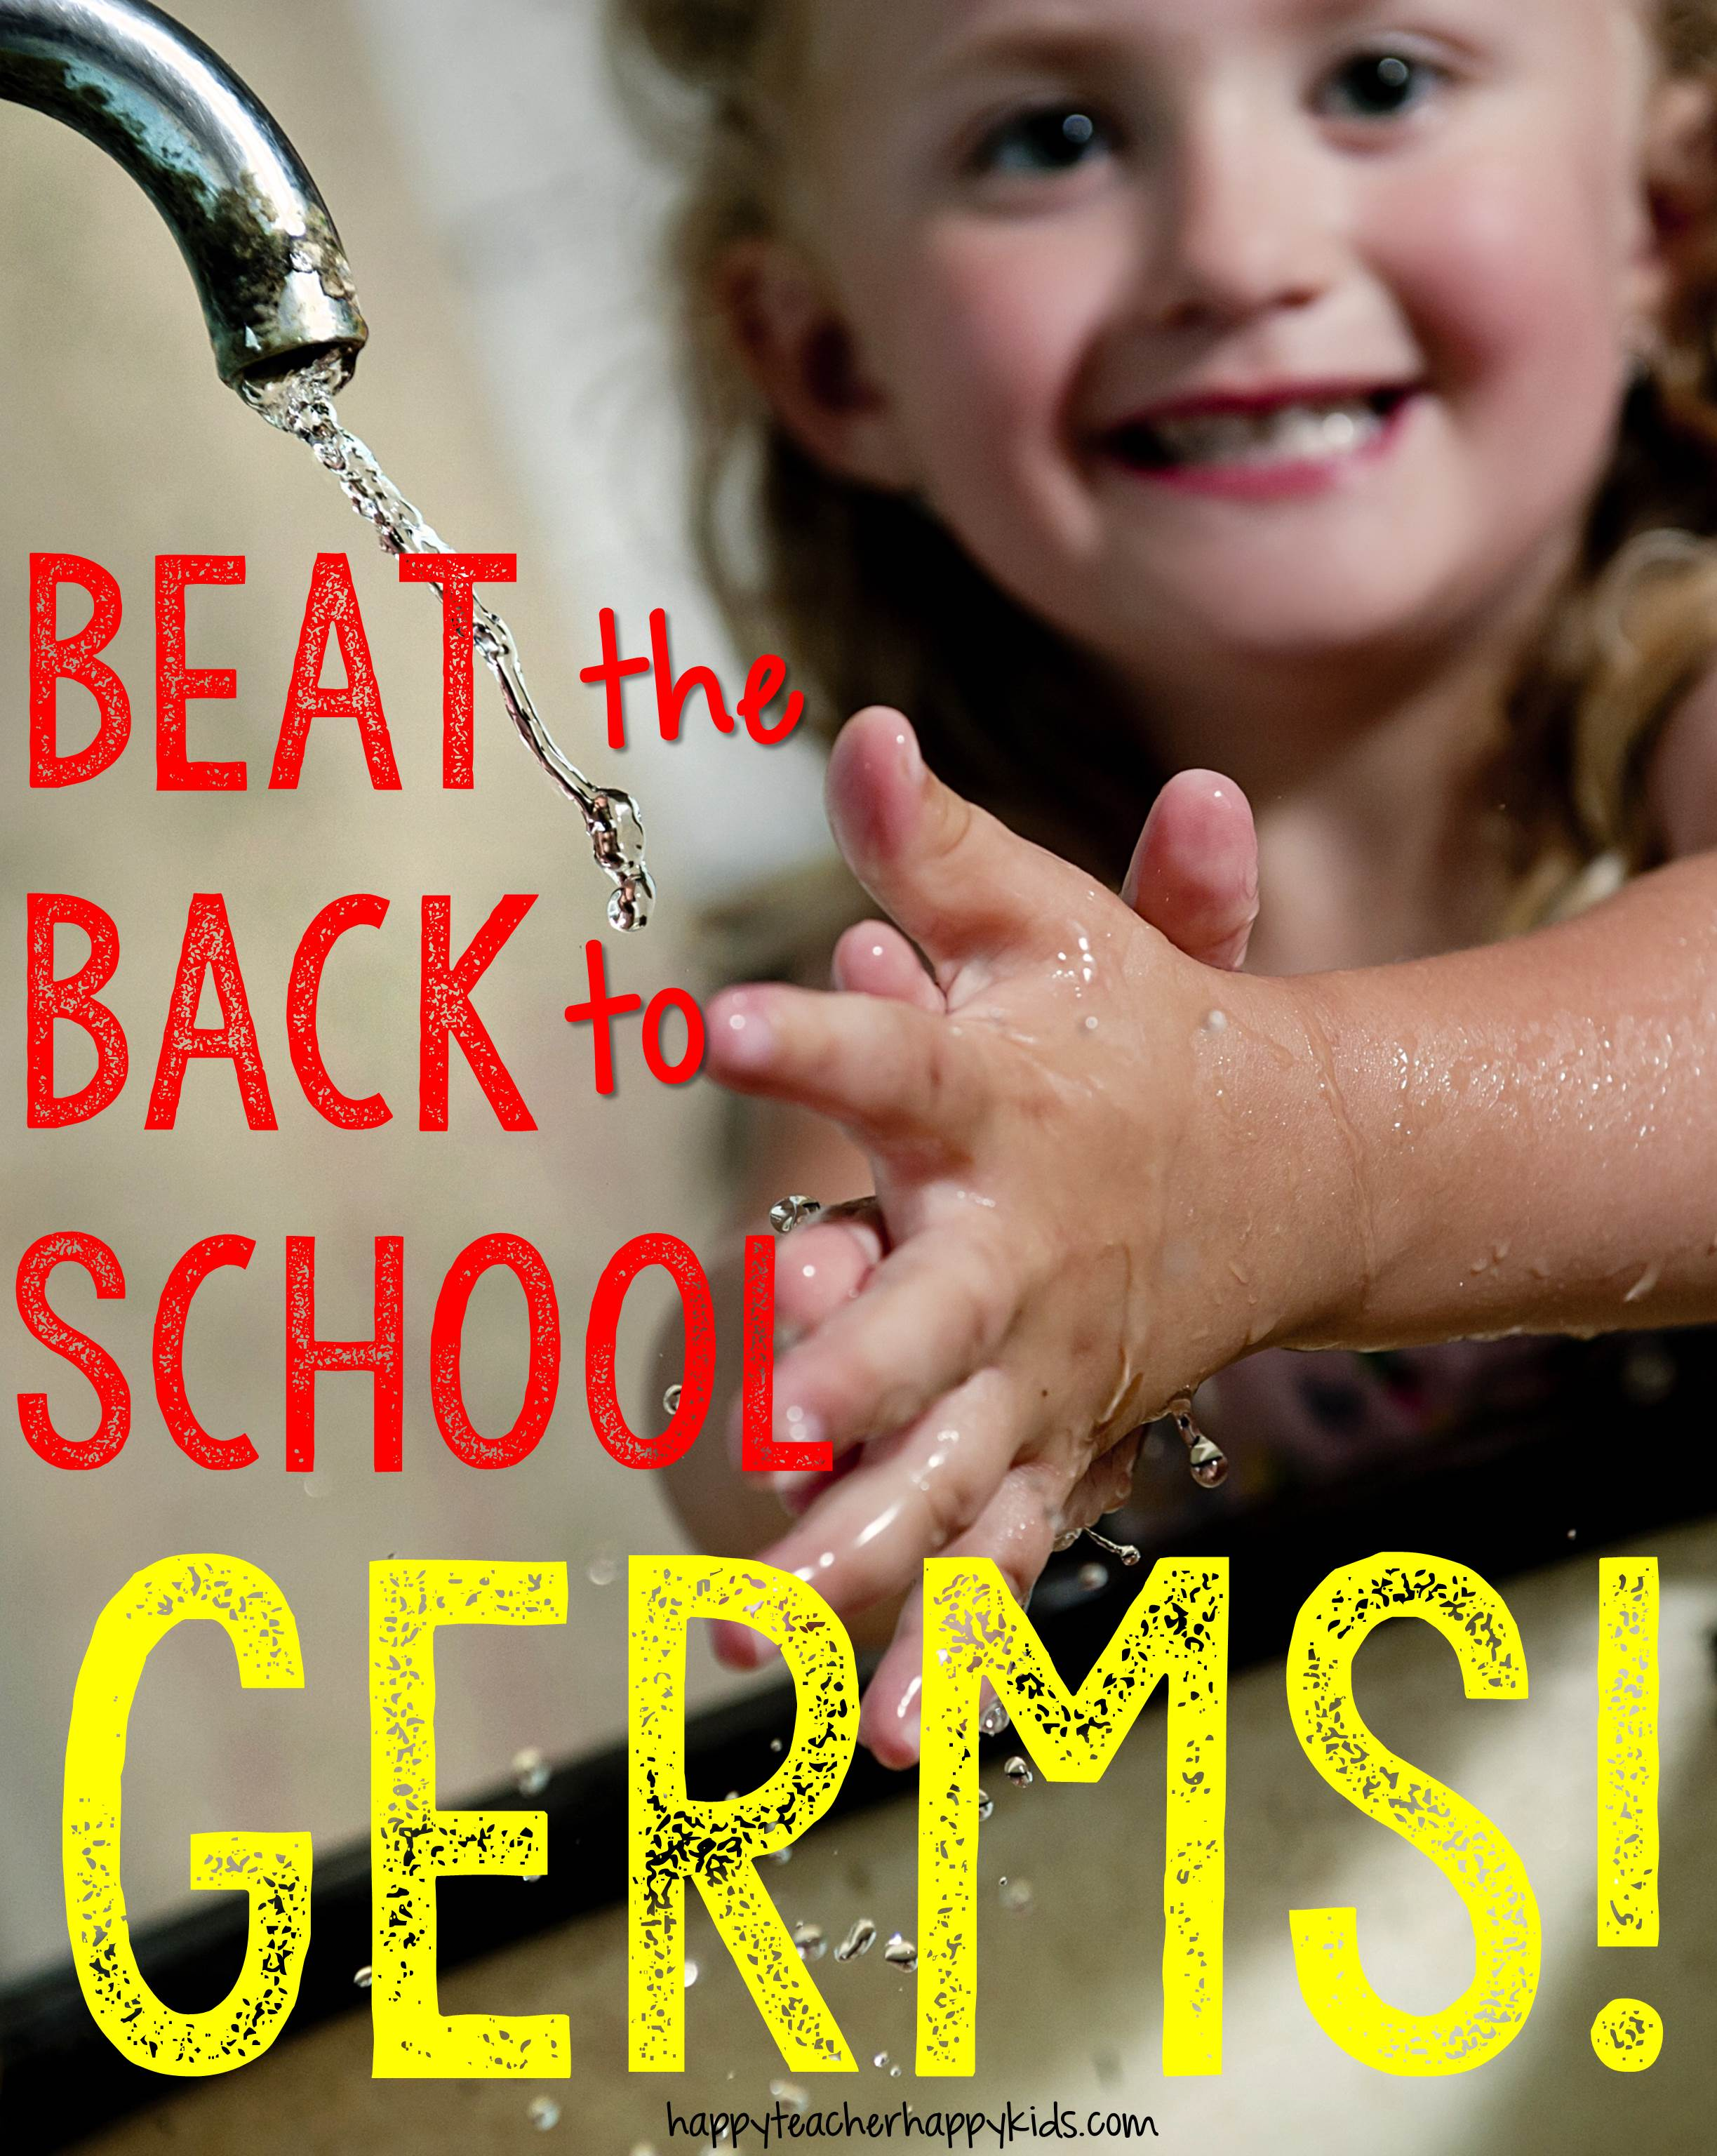 Beat the Back to School Germs